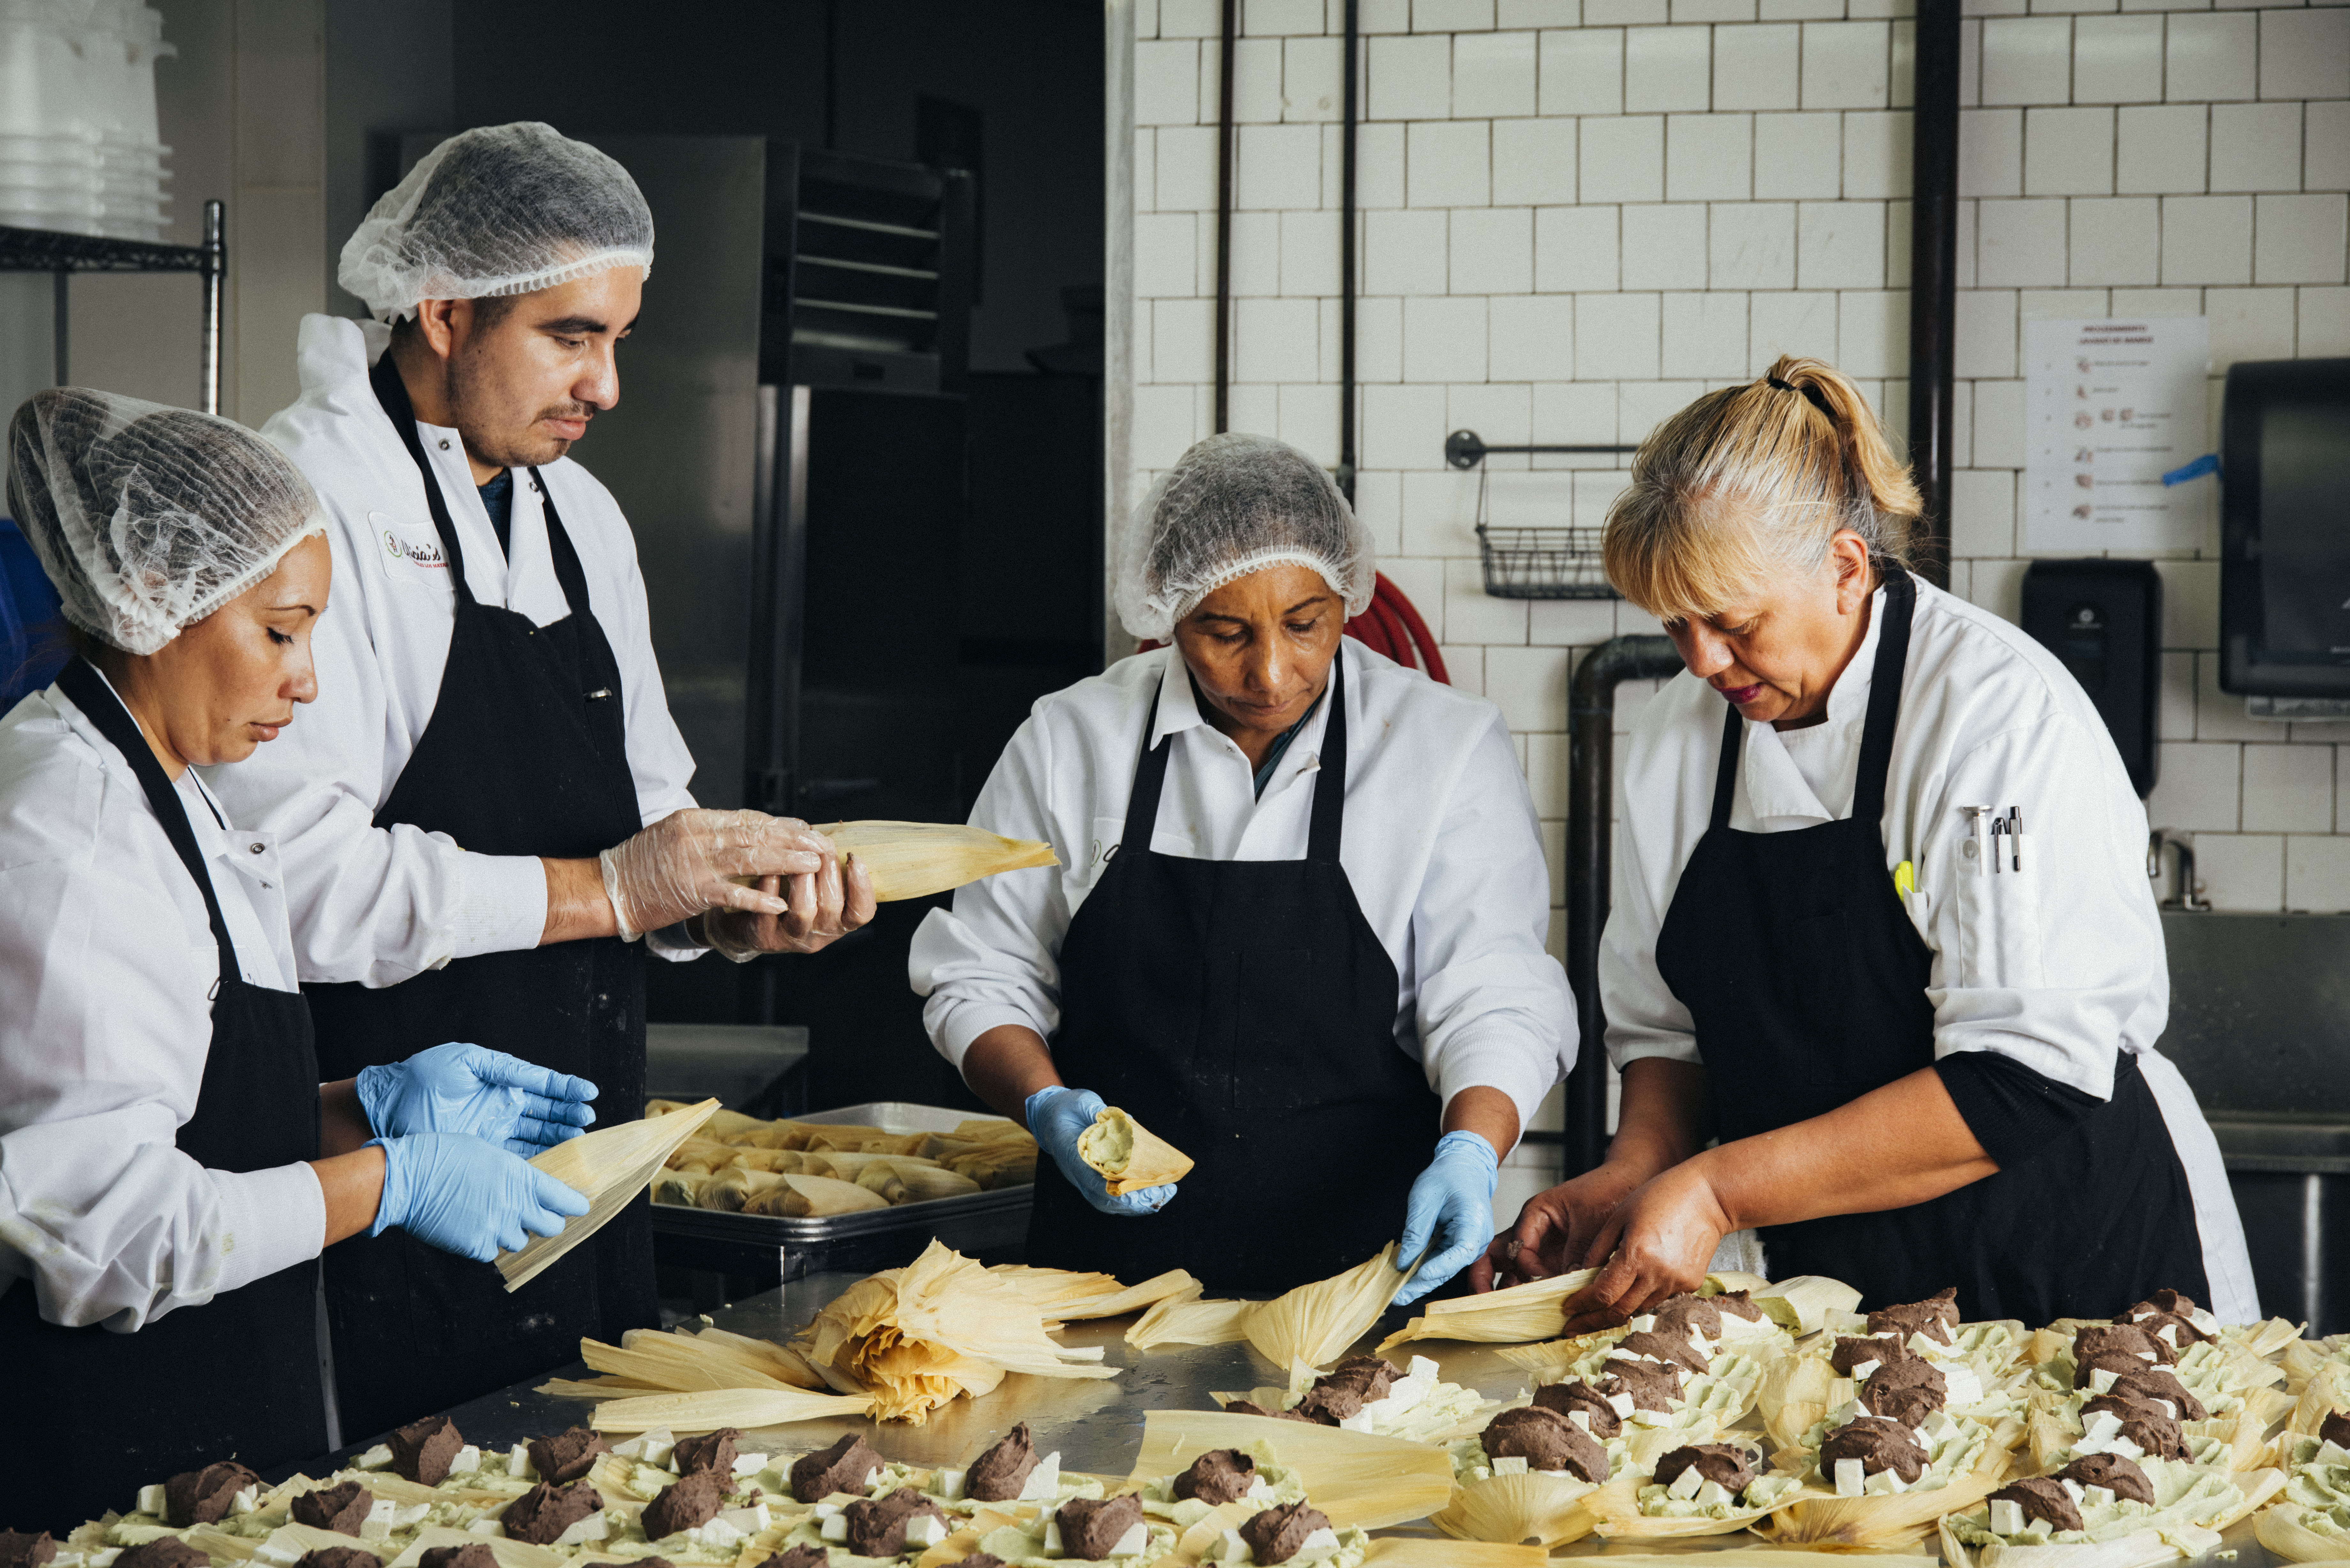 From left: Gloria Amaya, José Amaya, Silvia Gómez, and Alicia Villanueva, the founder of Tamales Los Mayas. A graduate of La Cocina's program for food entrepreneurs, Villanueva now provides catering to scores of Bay Area companies each month, and her tamales are sold in Northern California Whole Foods store (Eric Wolfinger)